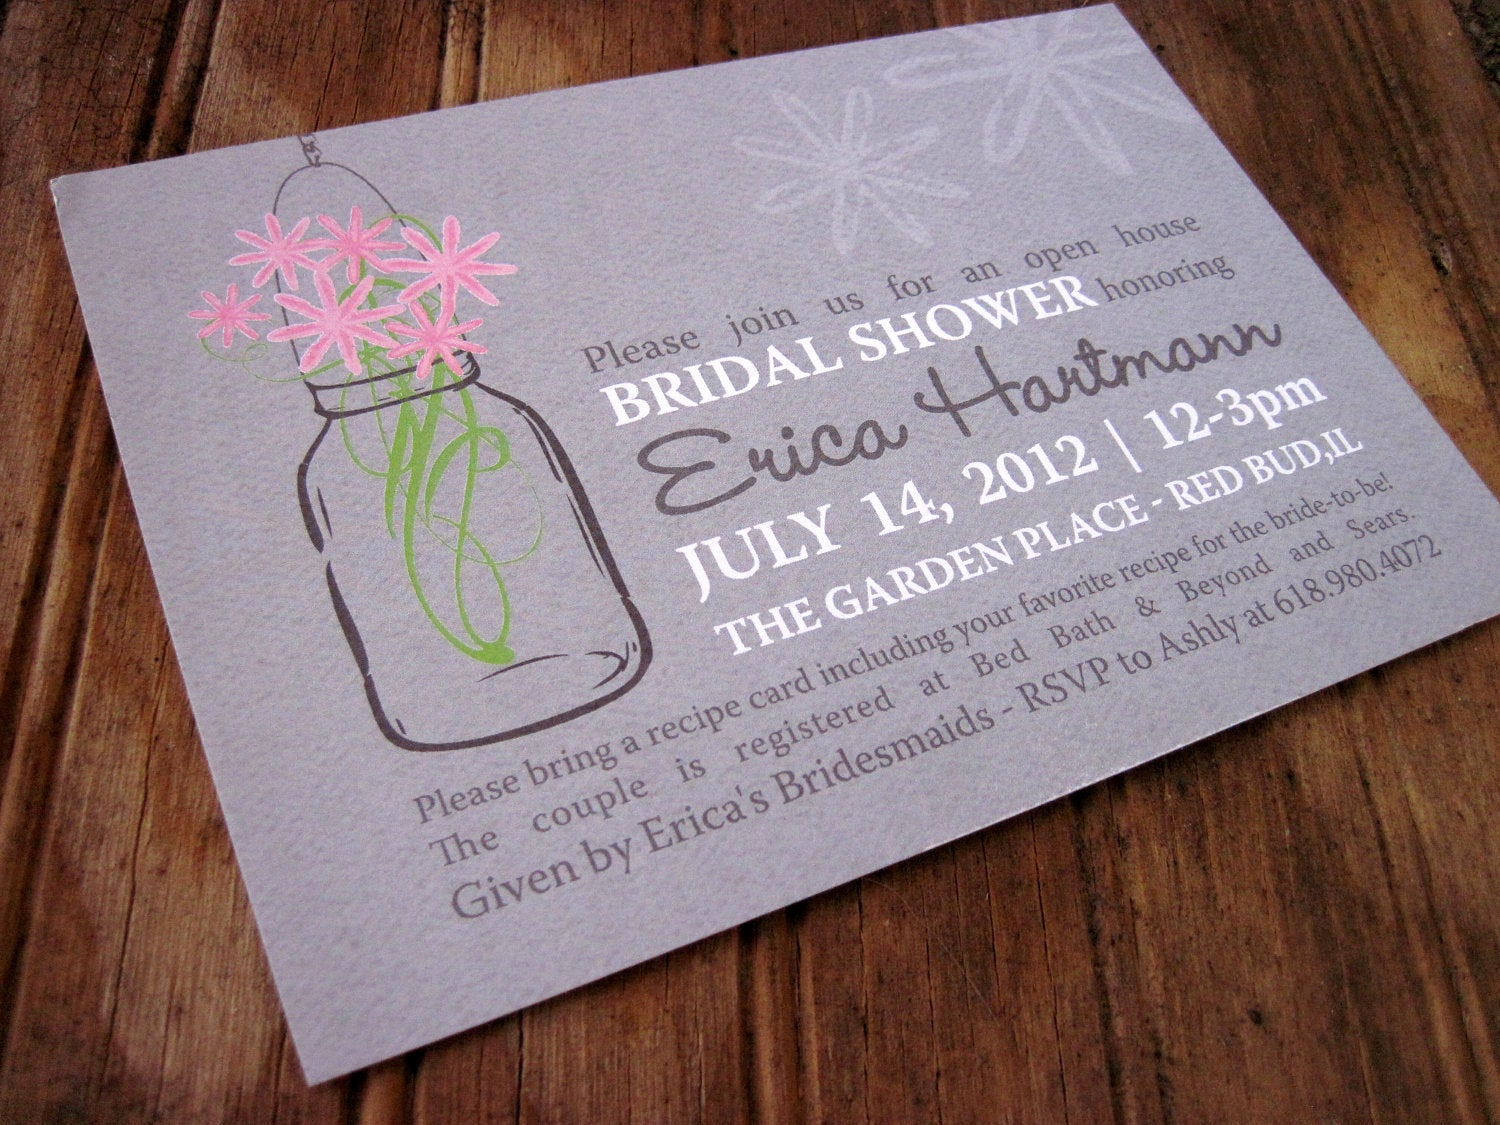 Mason Jar Bridal Shower Invitation Inspirational Mason Jar Bridal Shower Invitation